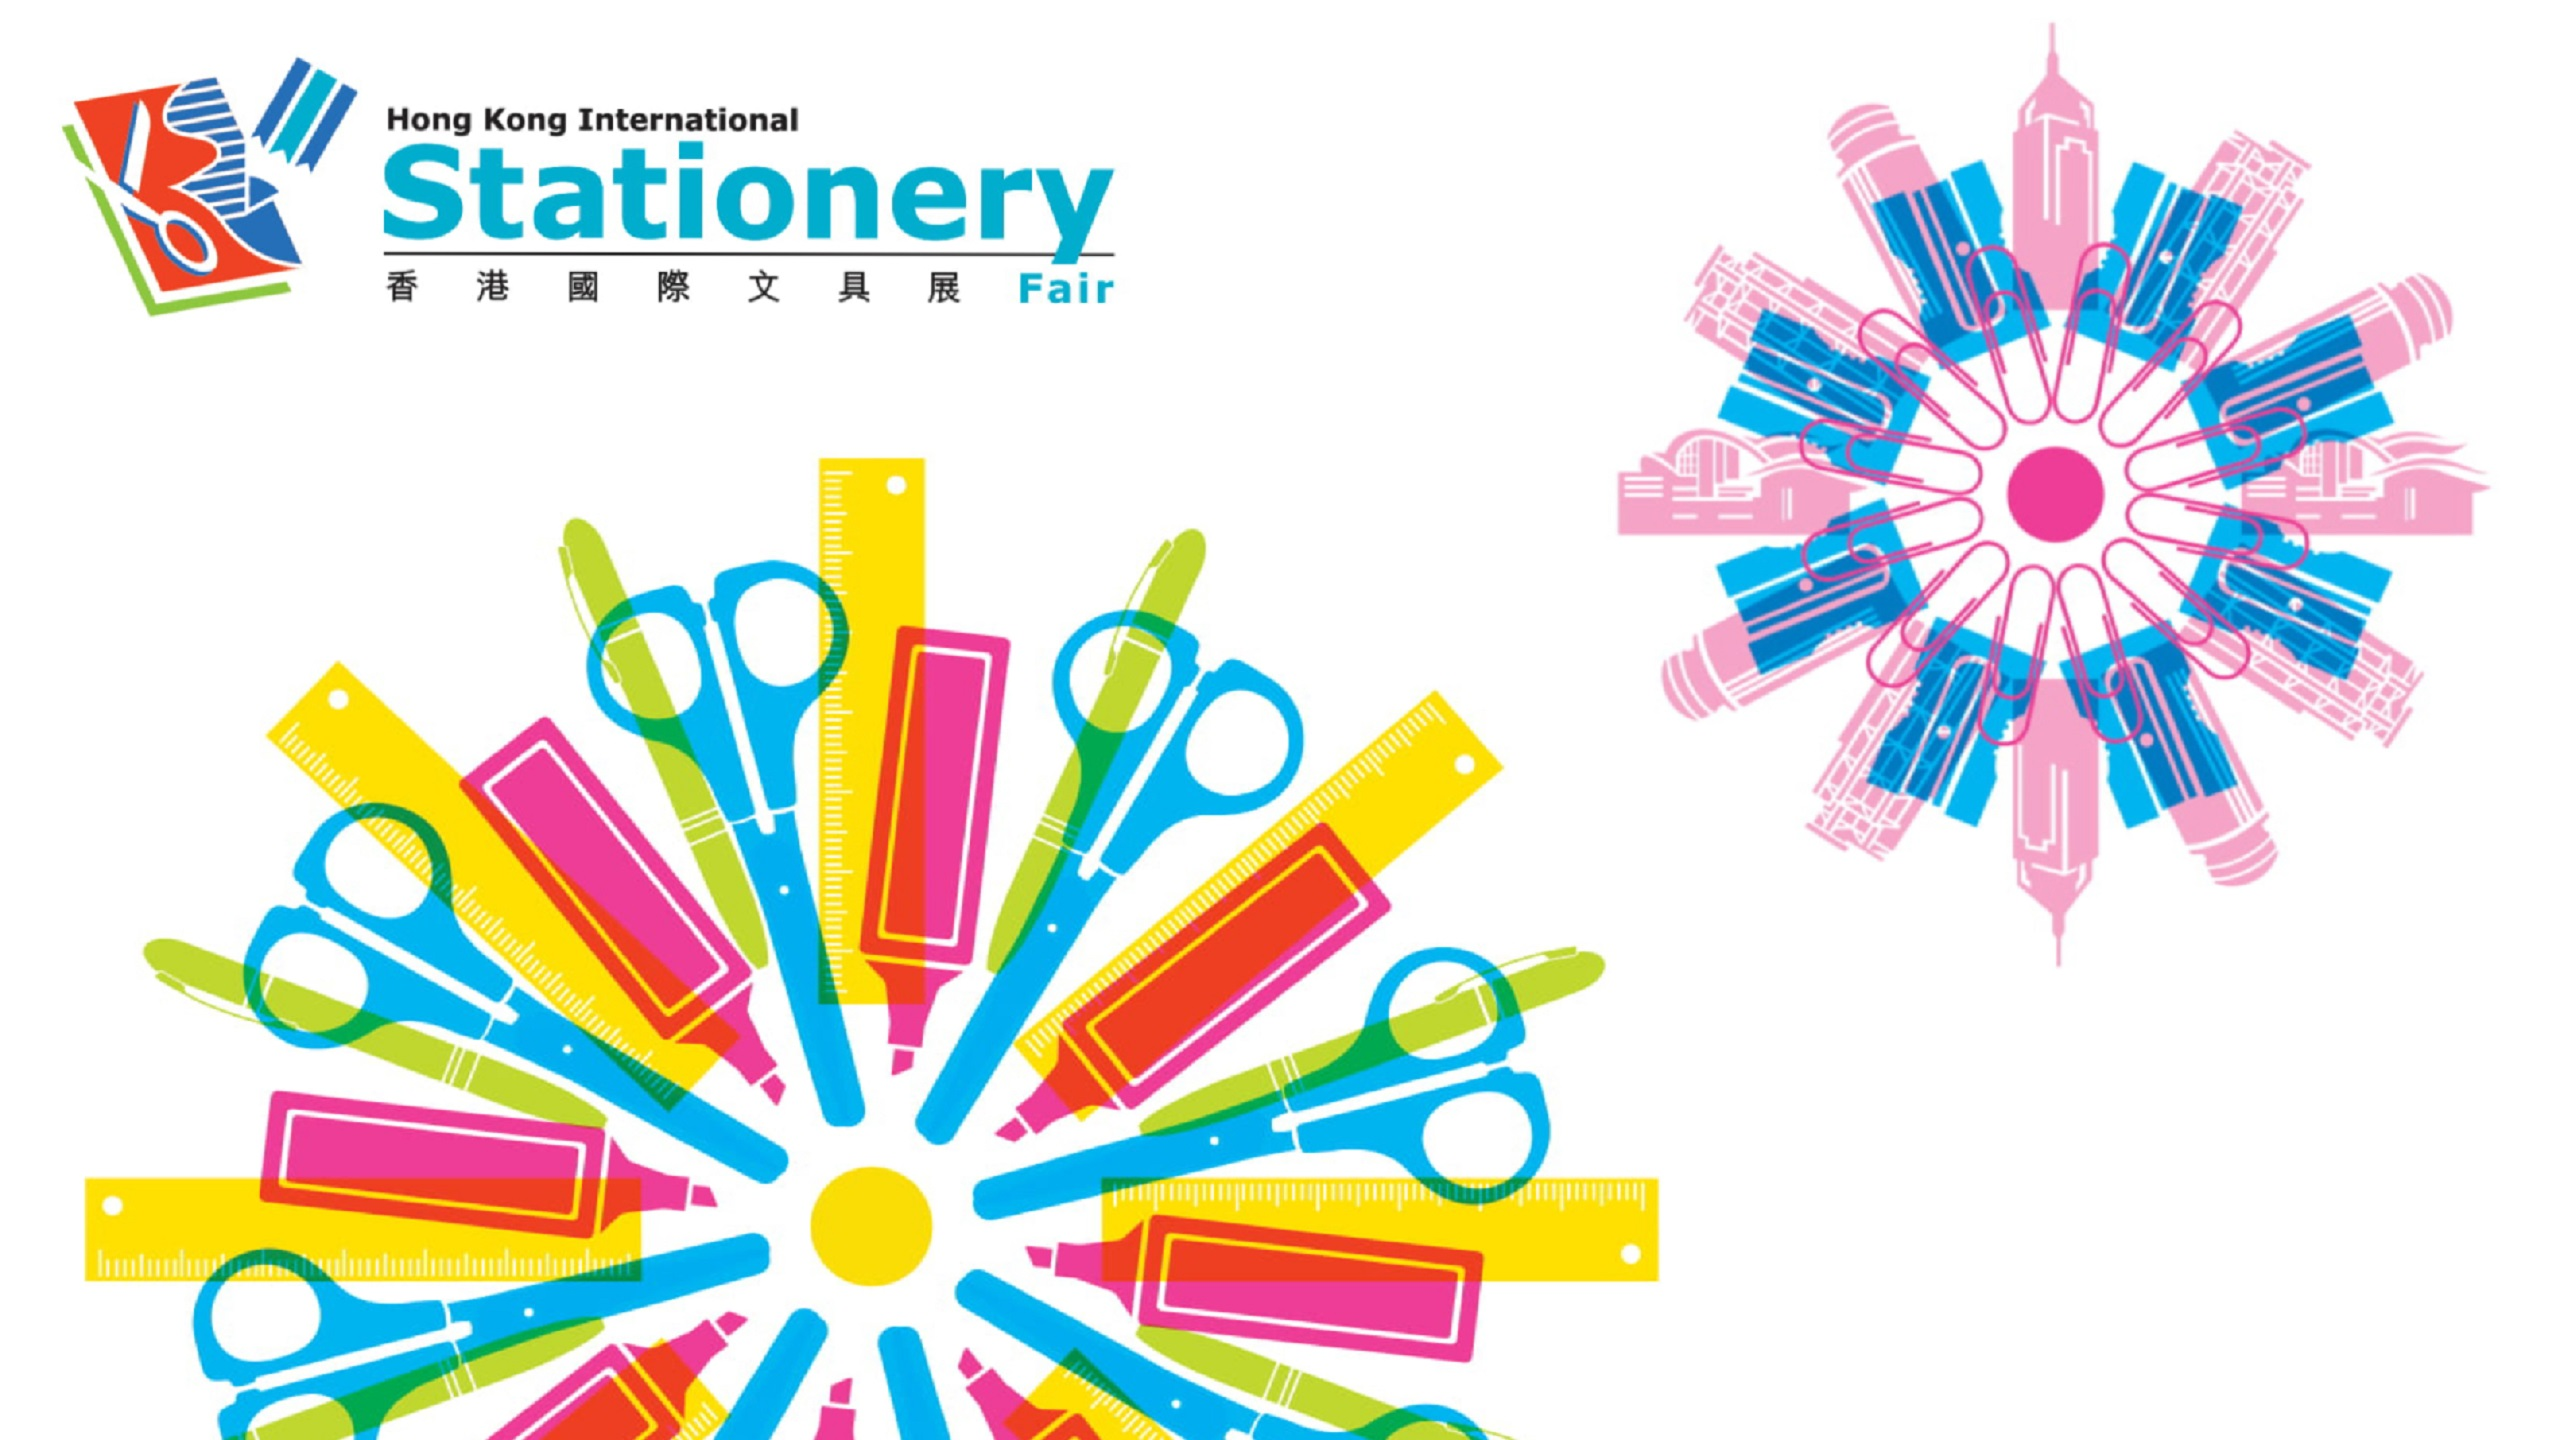 Hong Kong International Stationary Fair